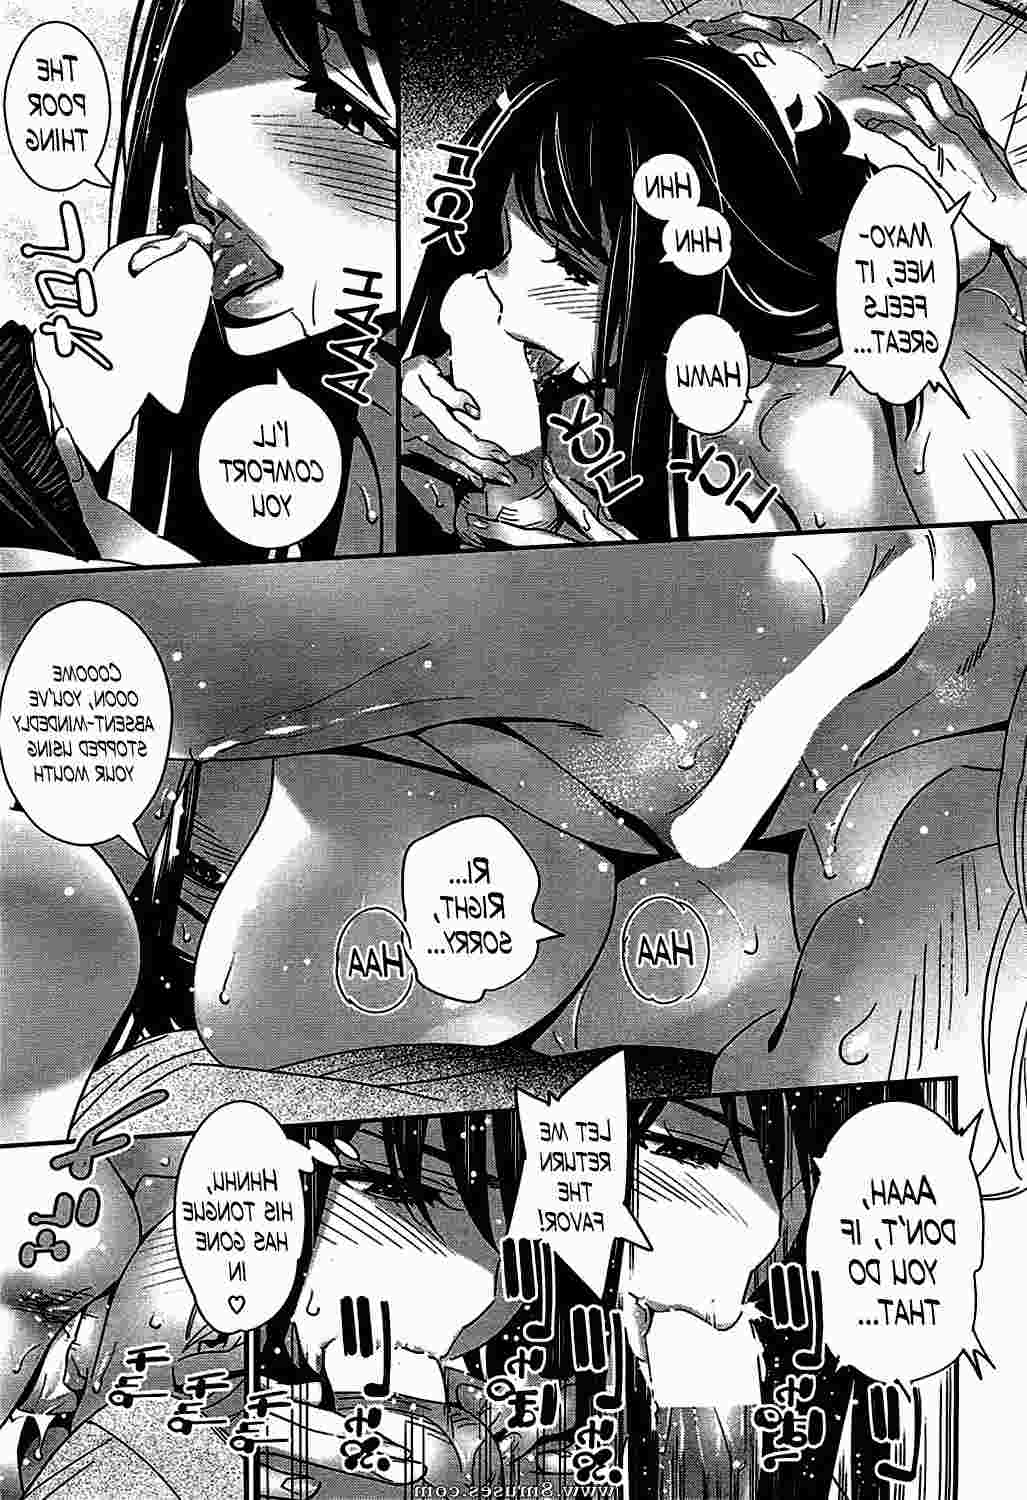 Hentai-and-Manga-English/Katsura-Yoshihiro/The-Ghost-Behind-My-Back The_Ghost_Behind_My_Back__8muses_-_Sex_and_Porn_Comics_42.jpg